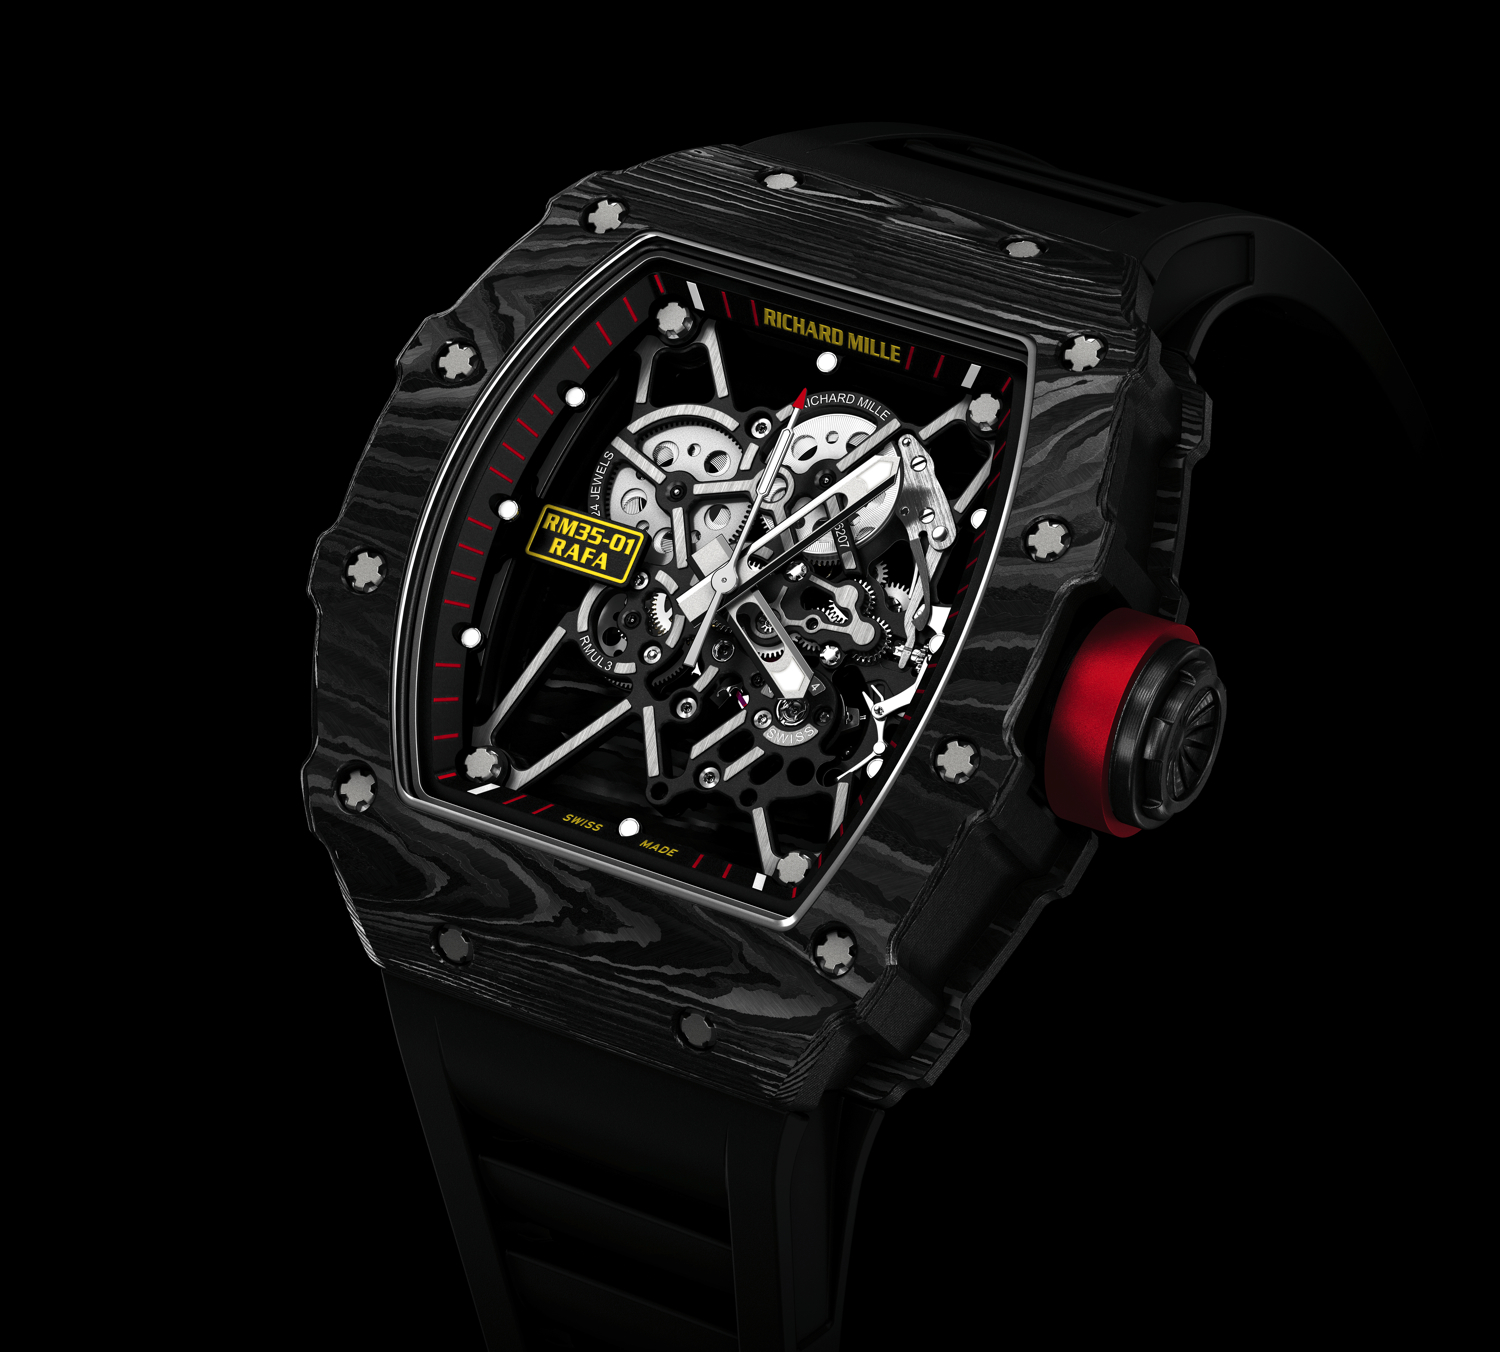 The Richard Mille Rafael Nadal Rm 35 01 Rafa